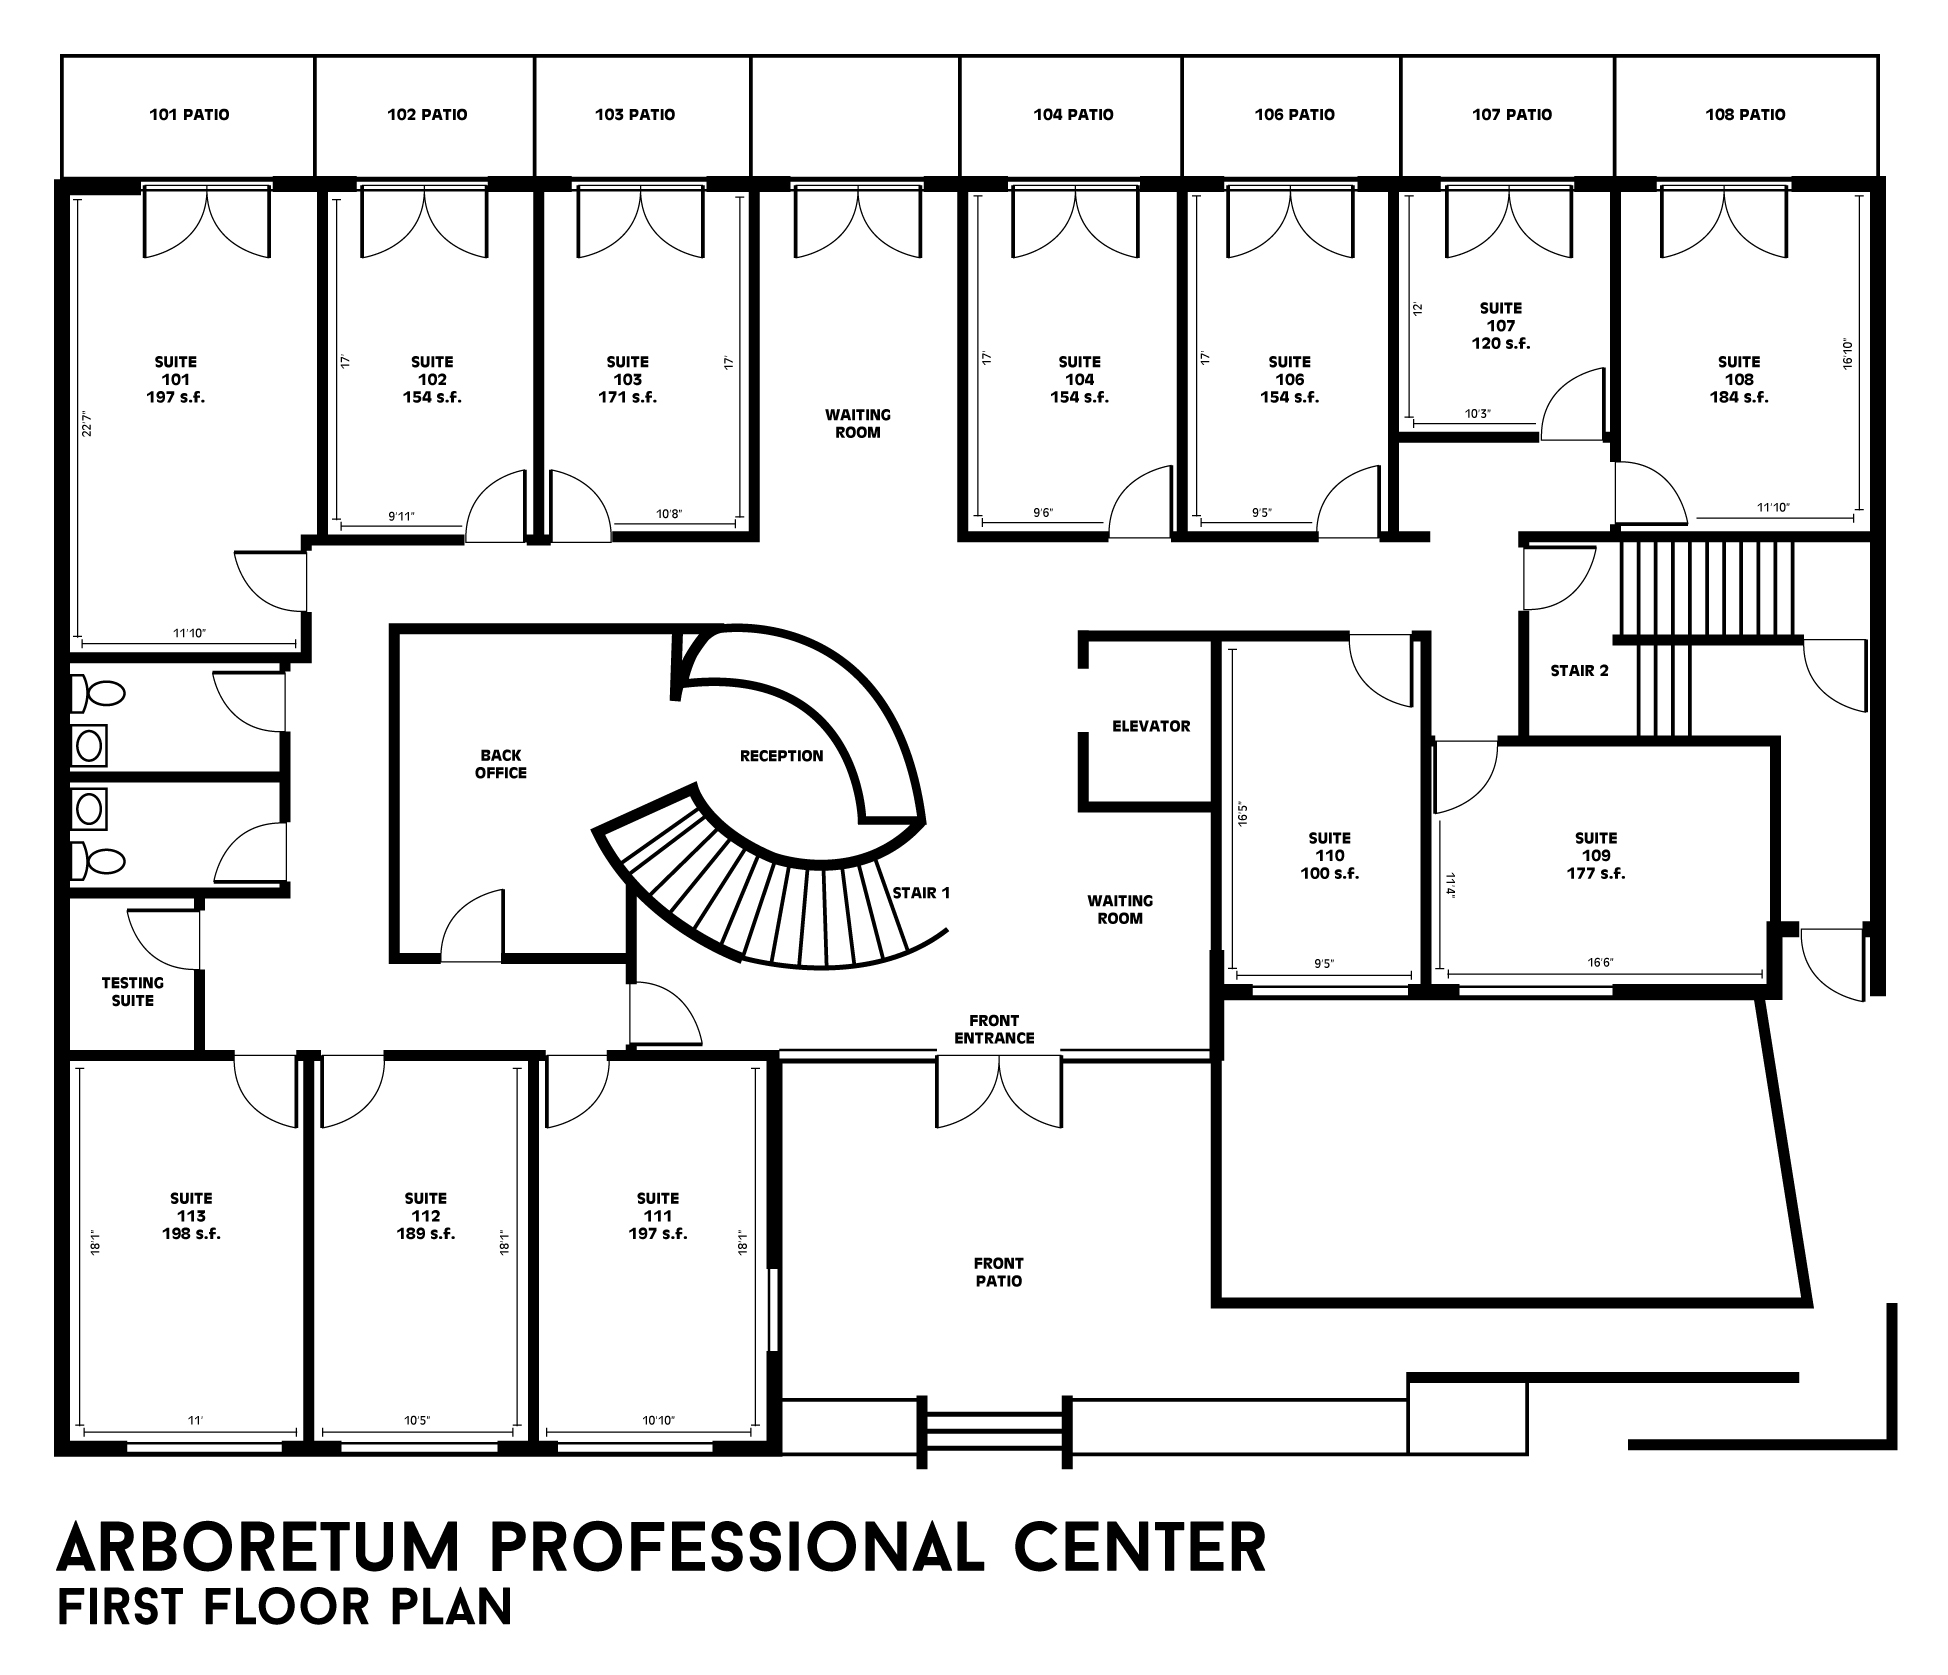 Building floor plans arboretum professional center for Building floor plans